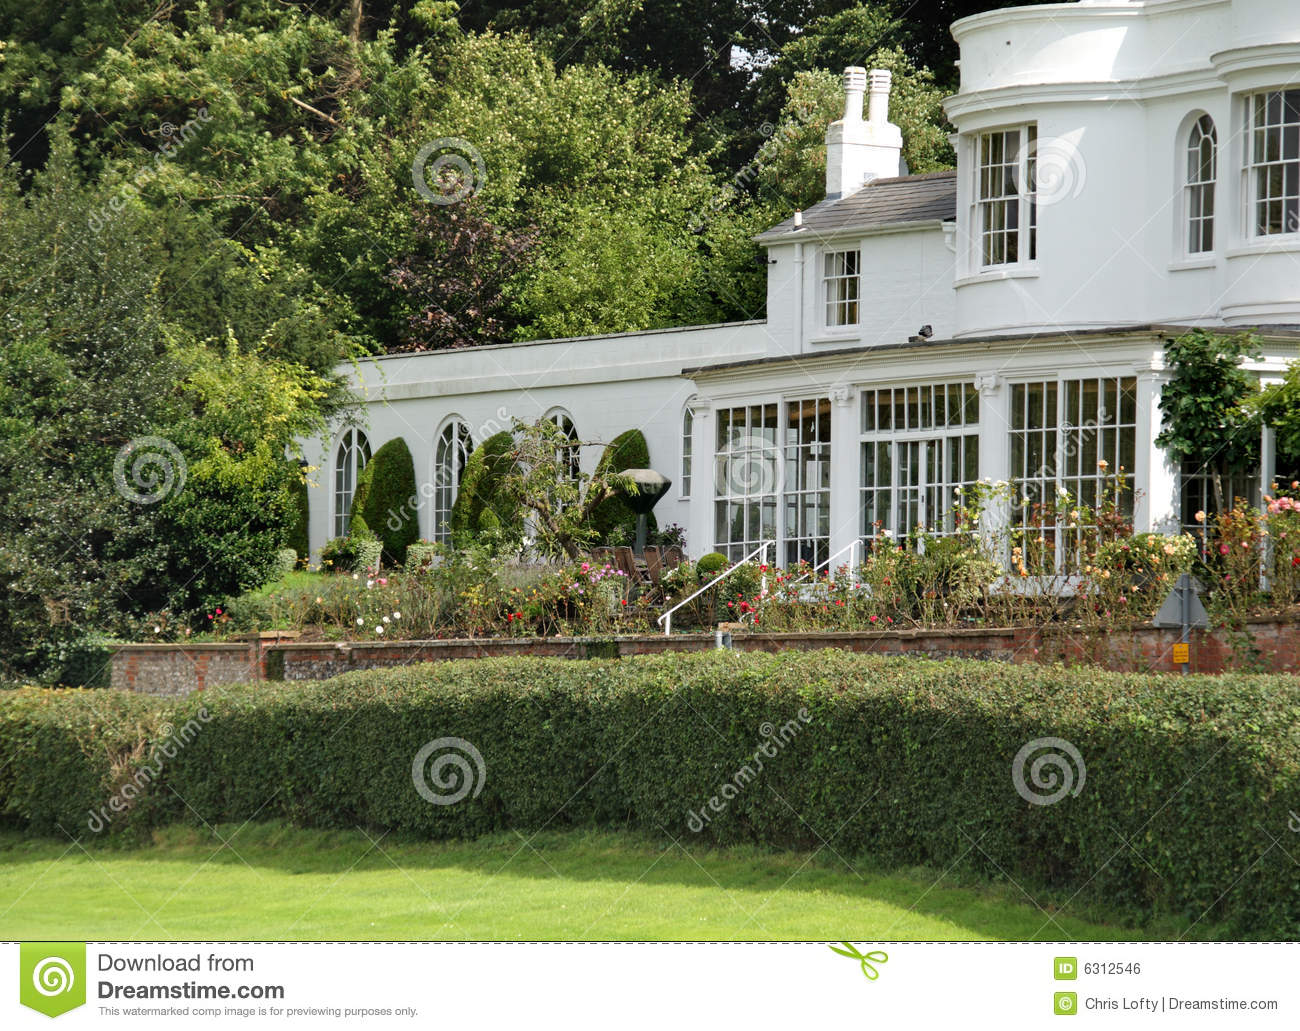 Maison de campagne et jardin anglais photo stock image for Photo de jardin de maison